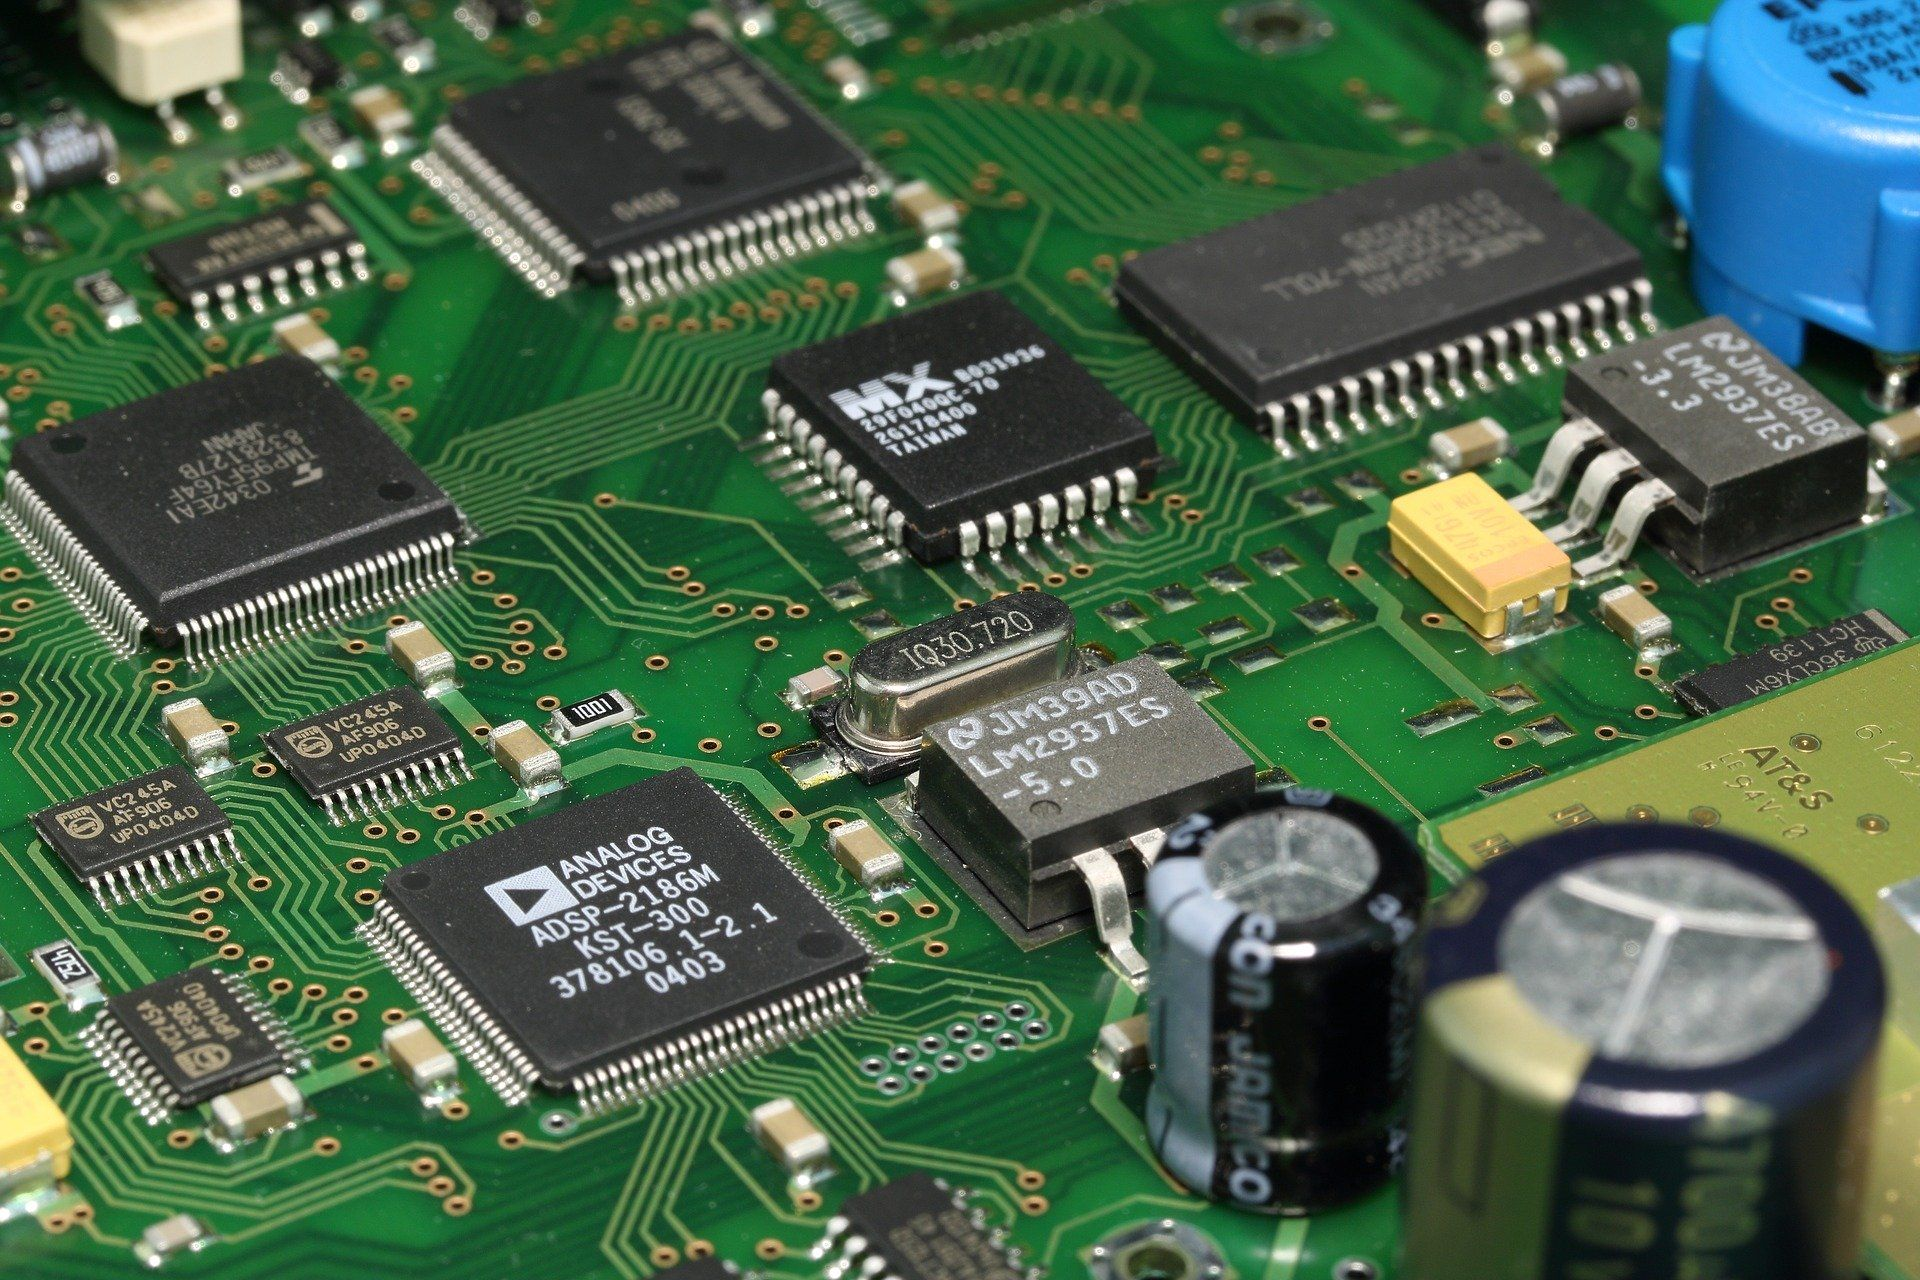 Esd Electrostatic Discharge And Labels On Pcb Assemblies In 2020 Circuit Board Design Printed Circuit Board Circuit